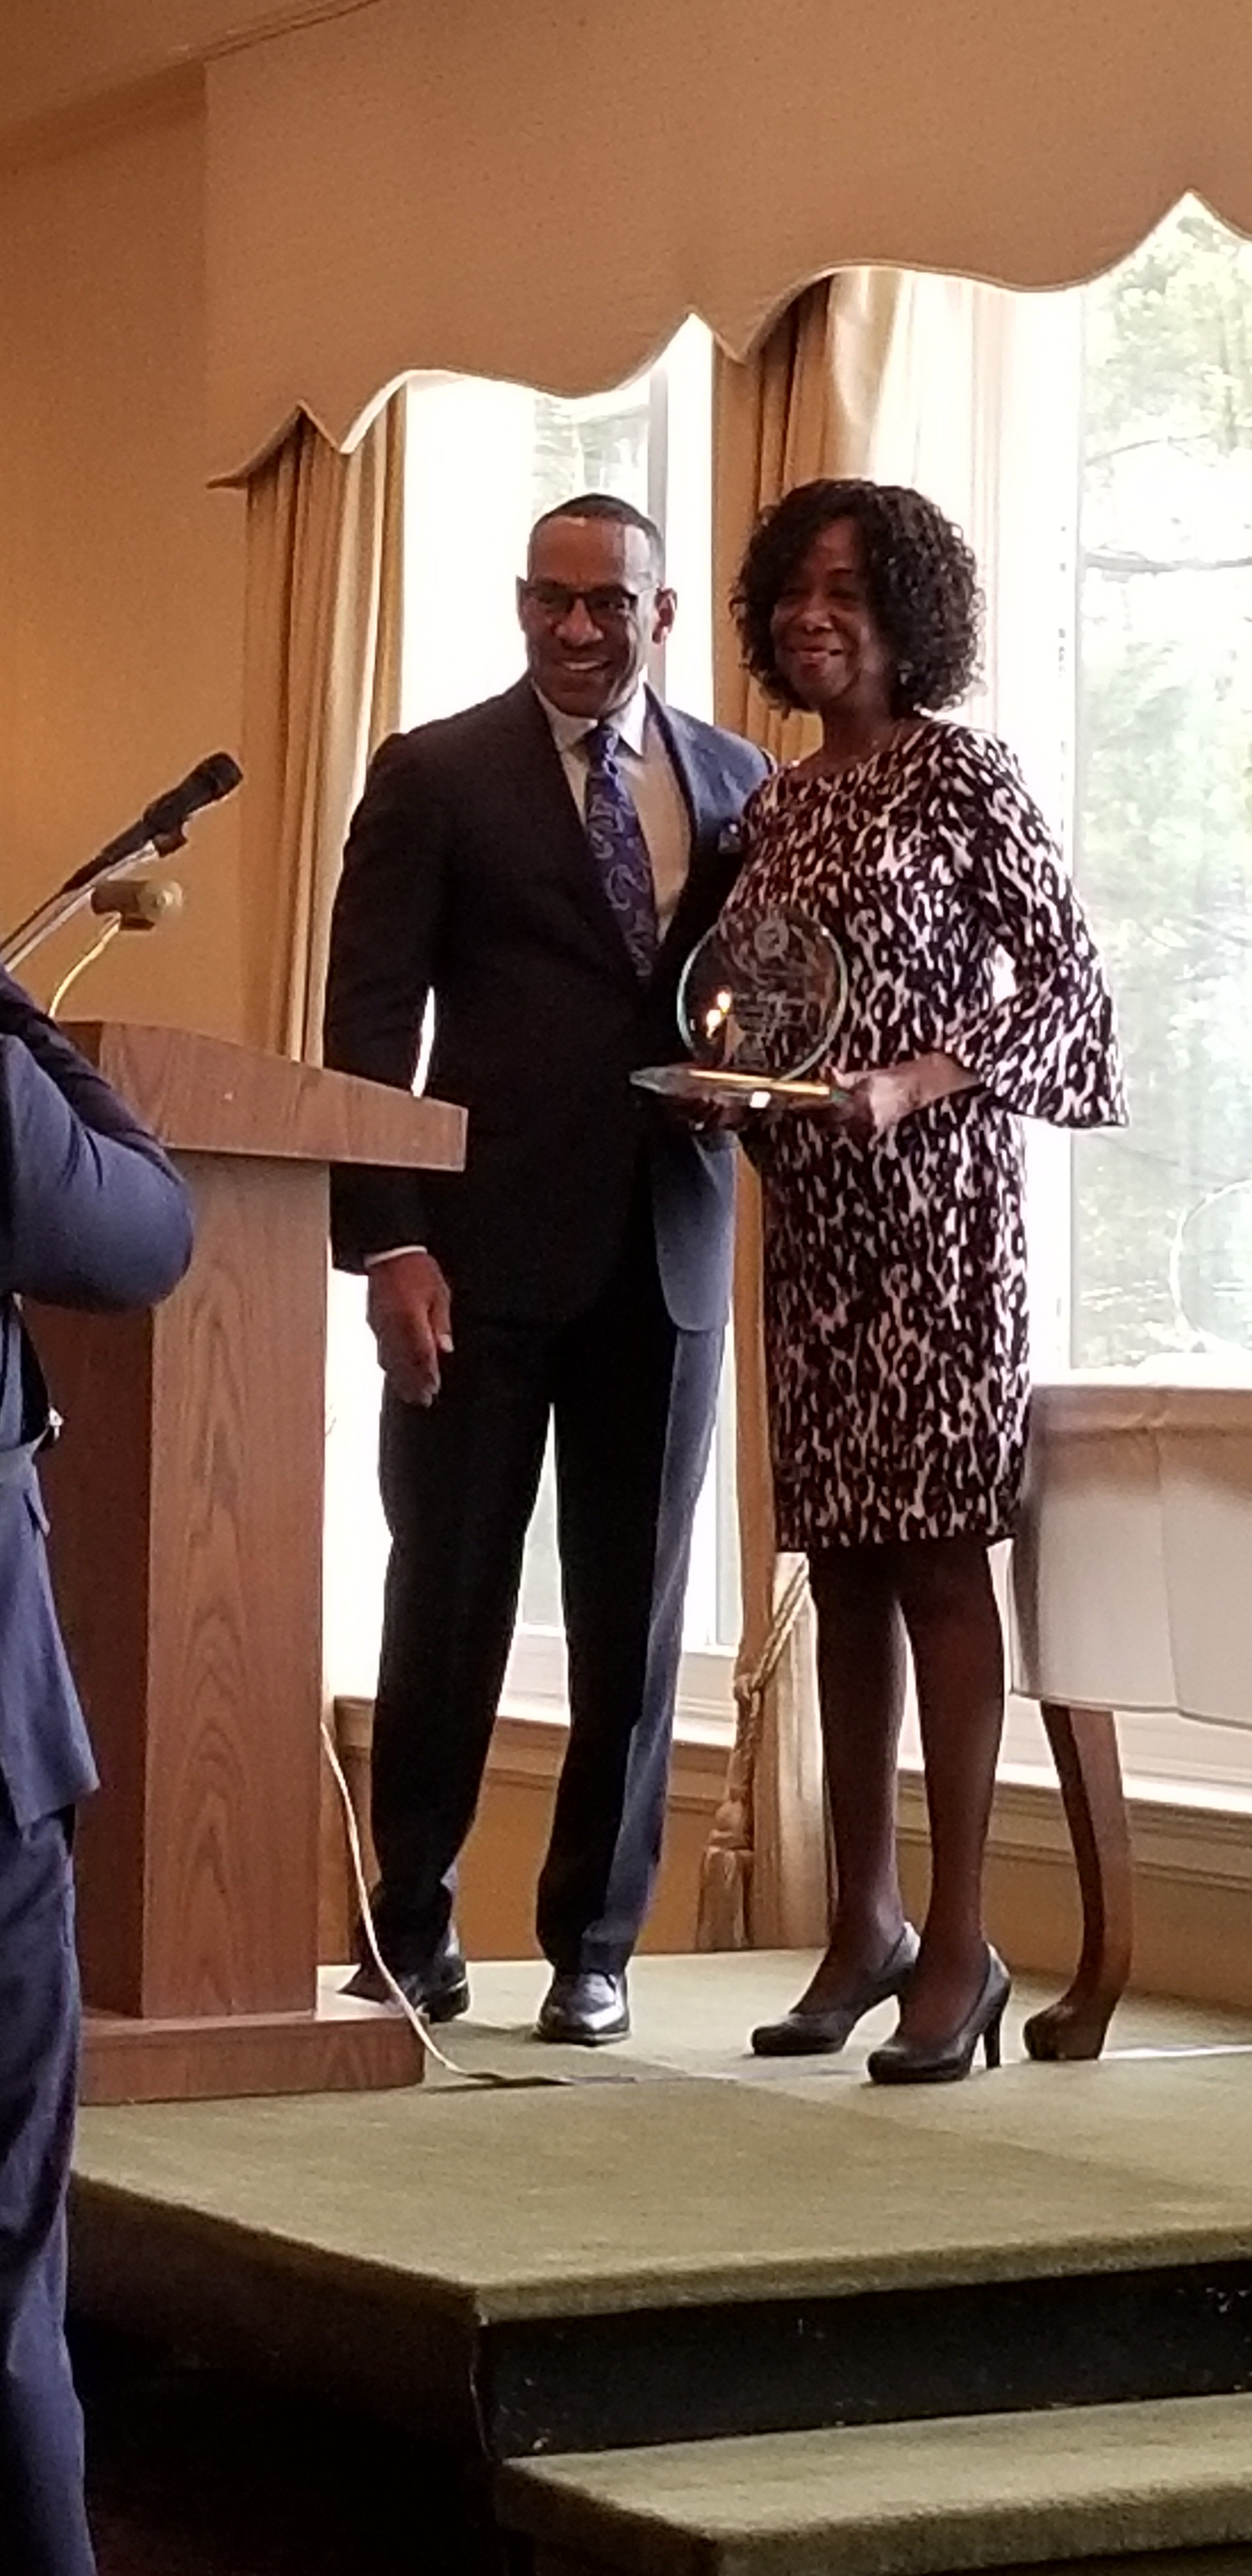 Our-own-1st-VP-Jacqui-Greadington-was-honored-this-morning-2.22.19-at-the-Essex-County-Democratic-Labor-Breakfast.-Anthony-Rosamilia-had-the-honor-of-introducing-her-5